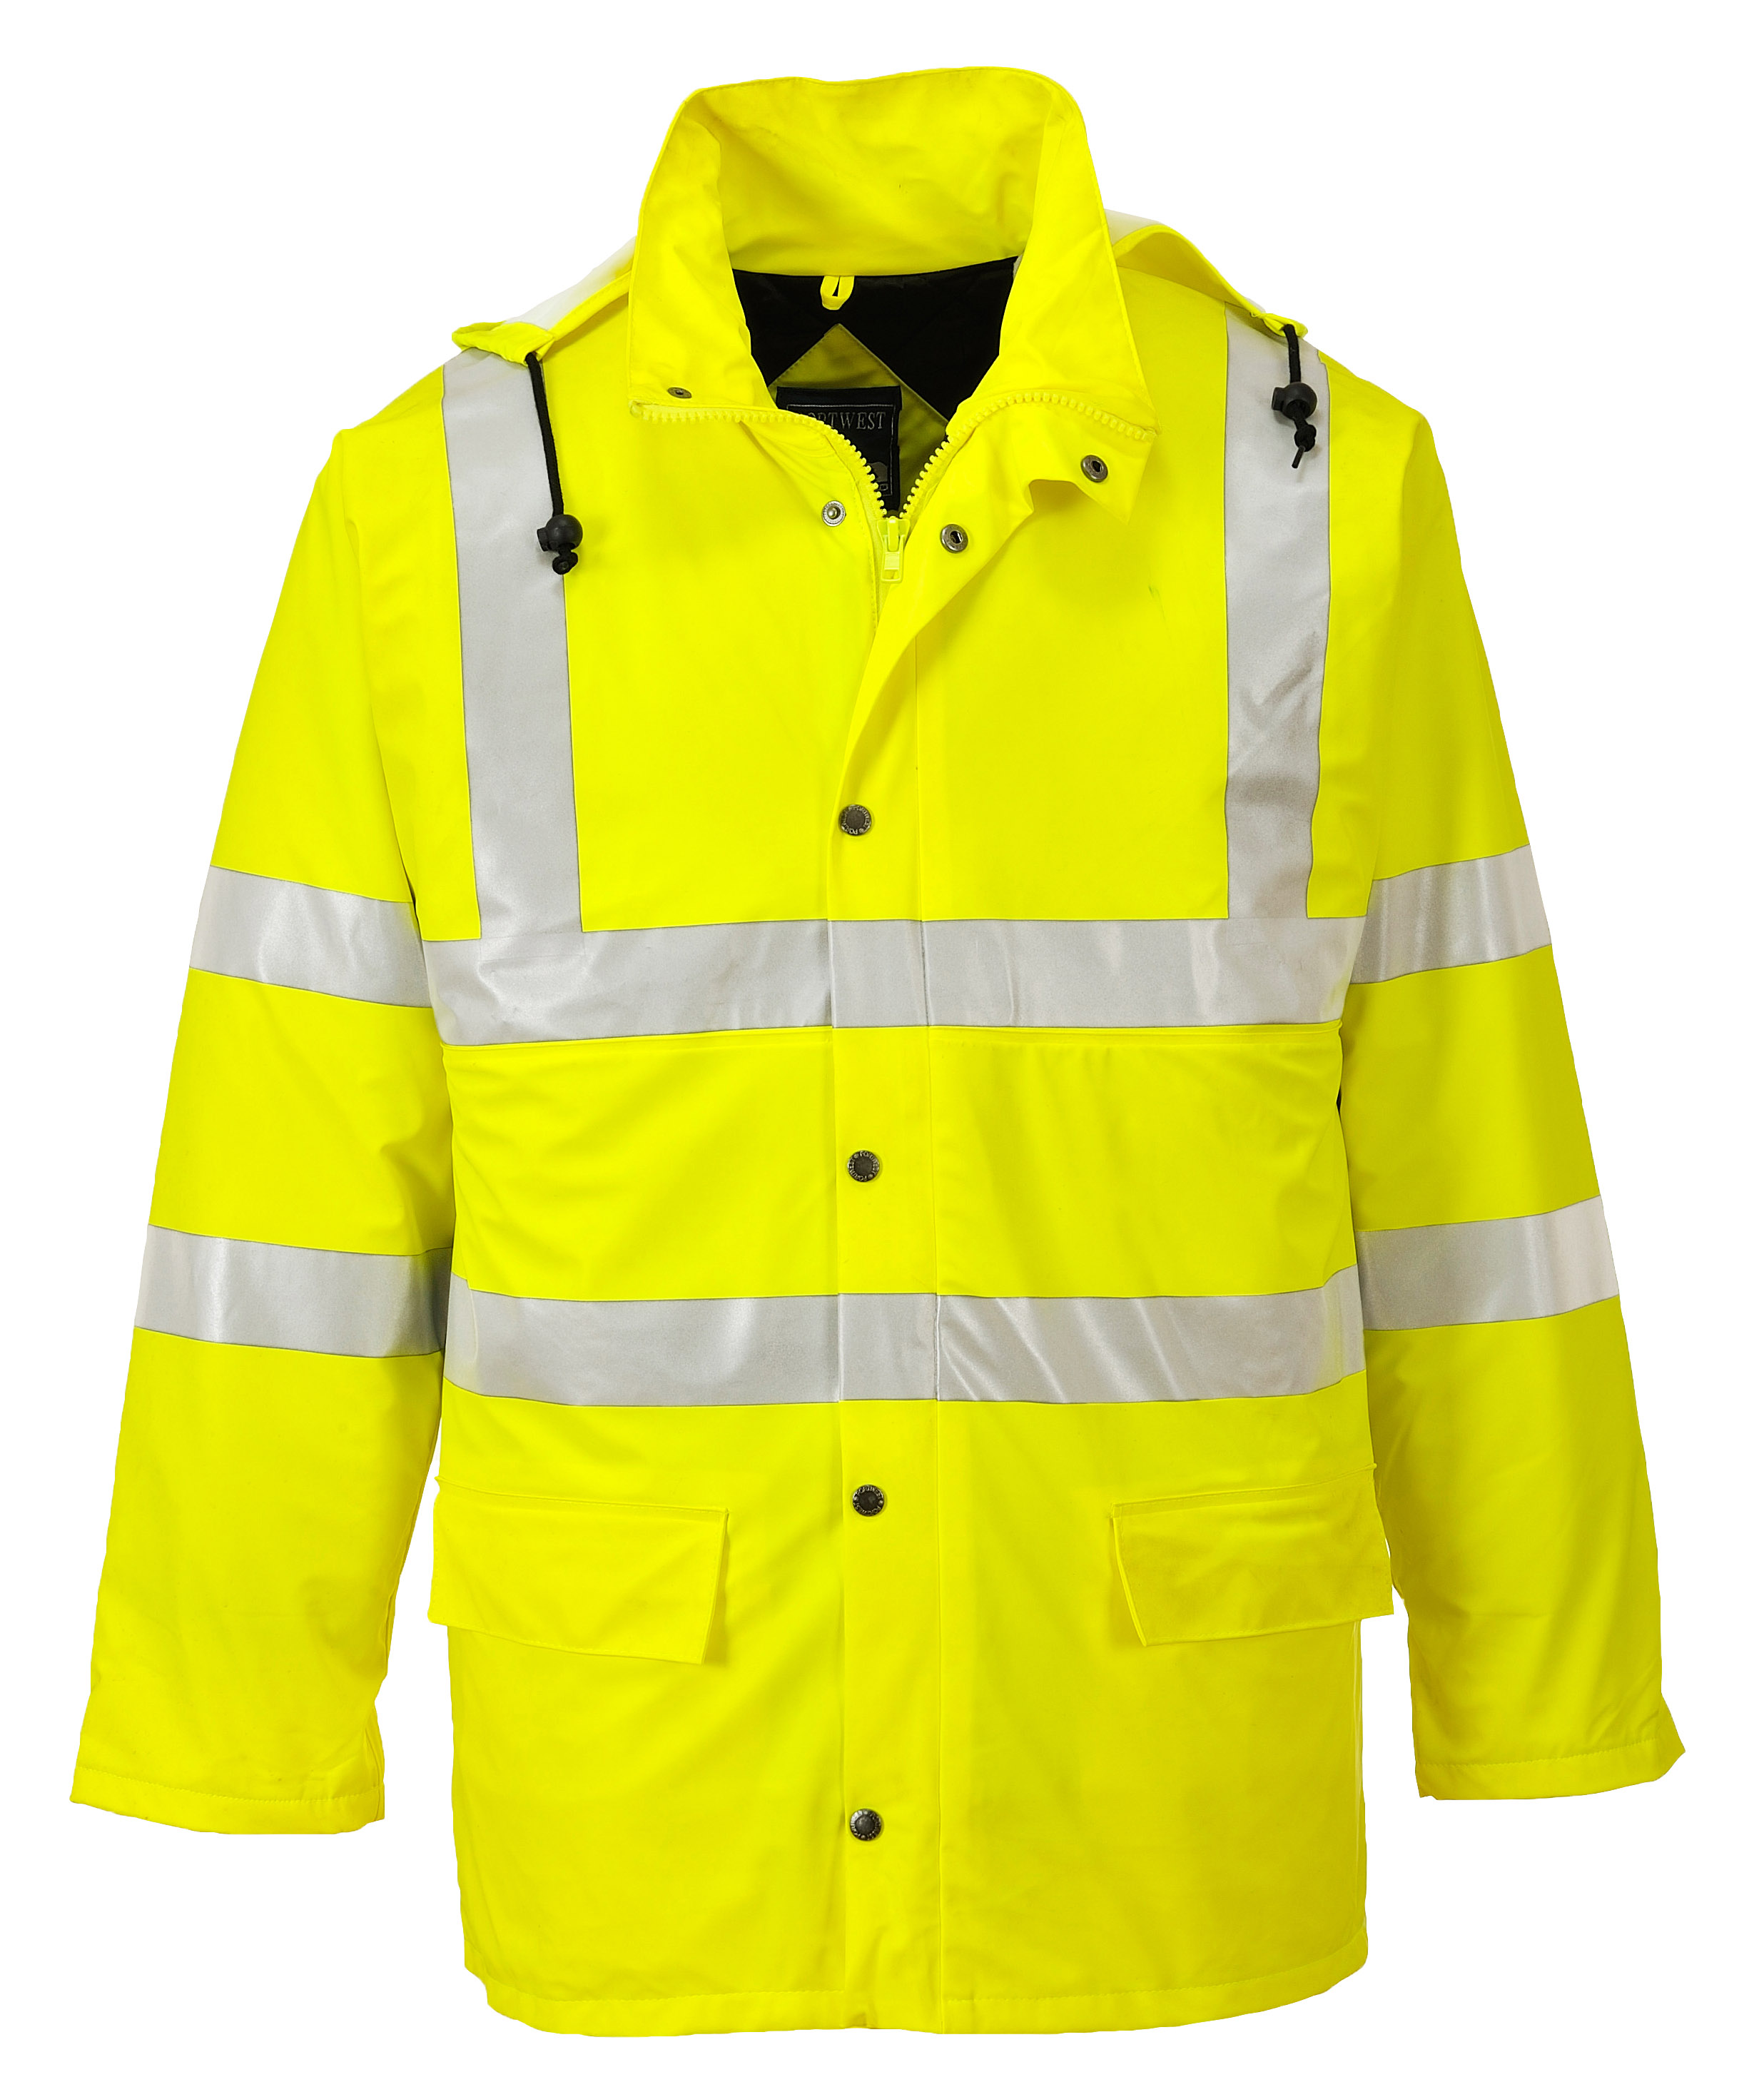 Portwest Us490 Insulated Rain Jacket Yellow Iwantworkwear